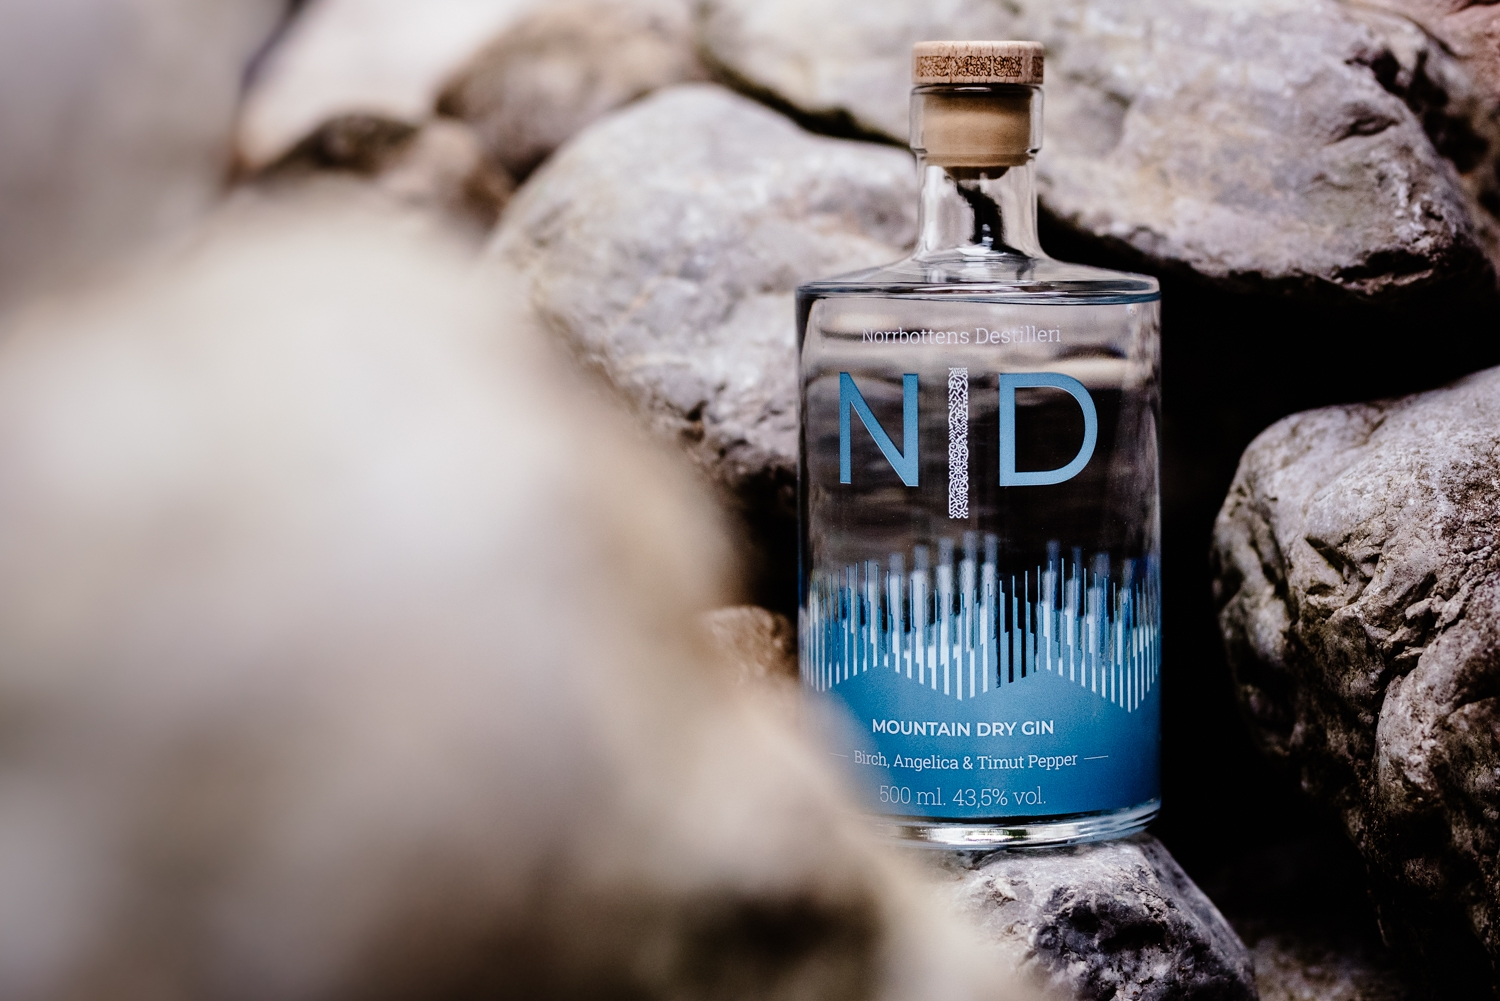 ND Mountain Dry Gin